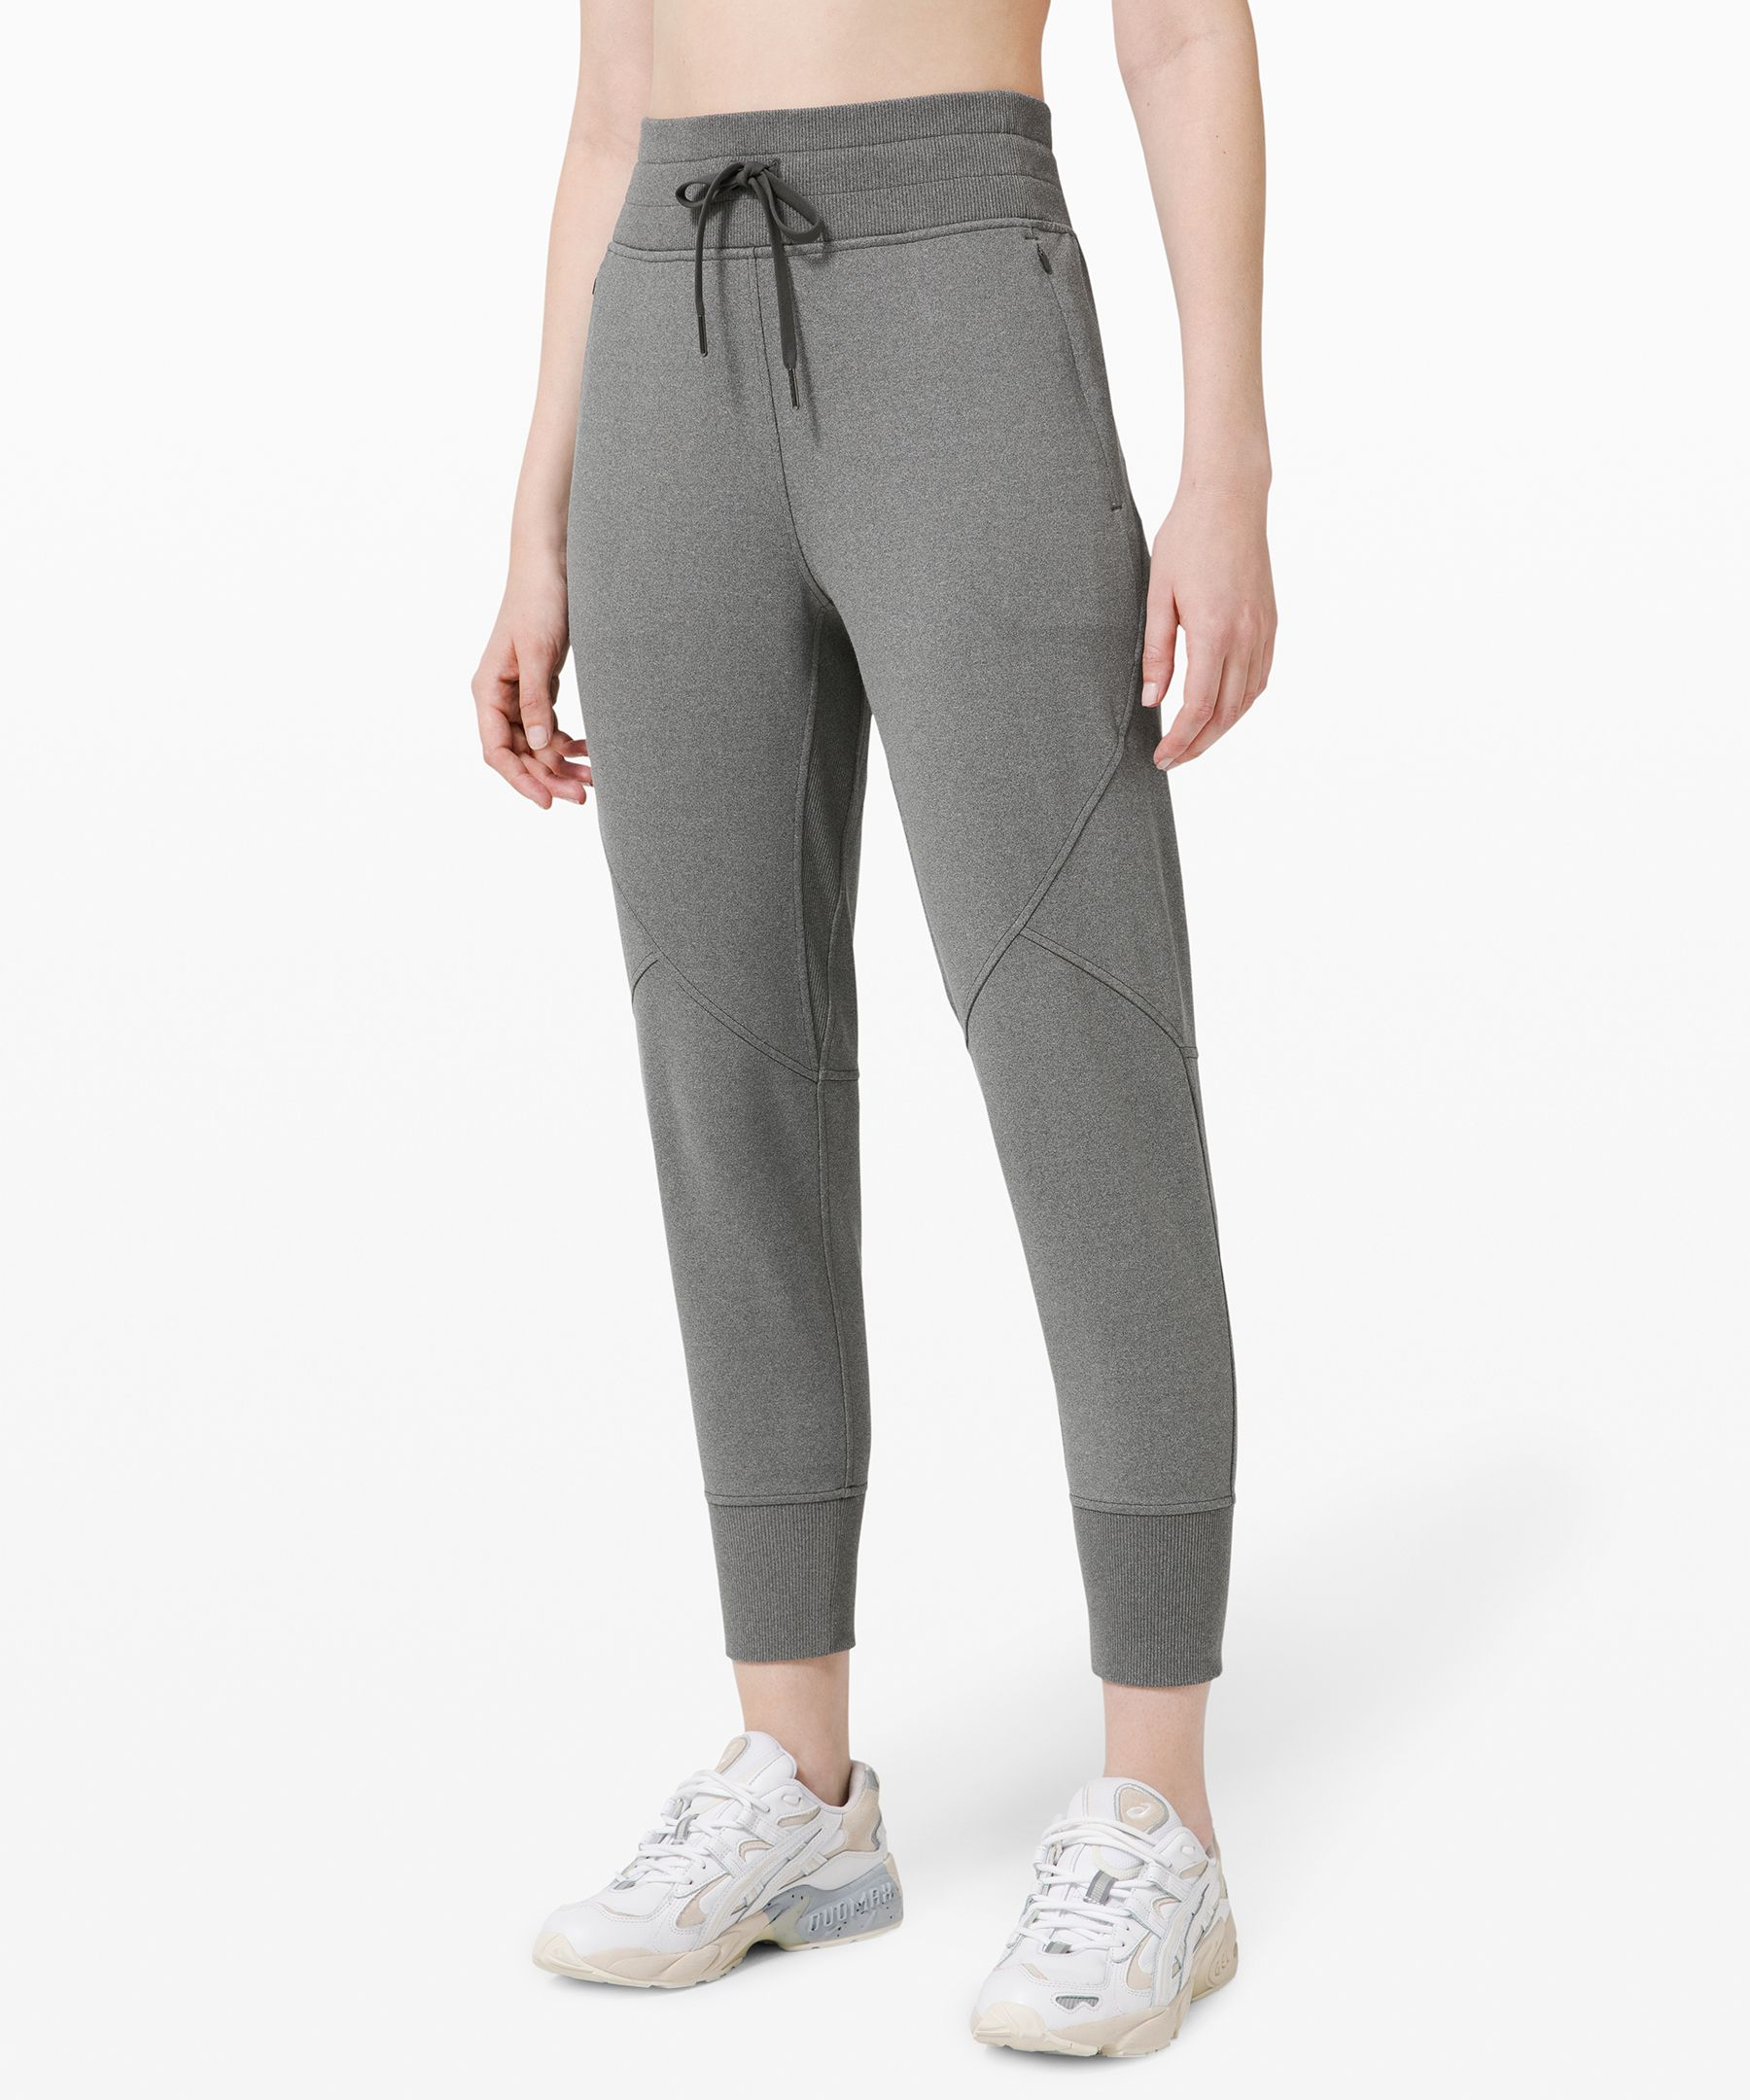 Move through your workouts and  beyond in these casual yet  sleek joggers, made from  technical fabric that\\\'s as  comfy as your favourite  sweats, but handles  perspiration so you feel glowy  not gross.